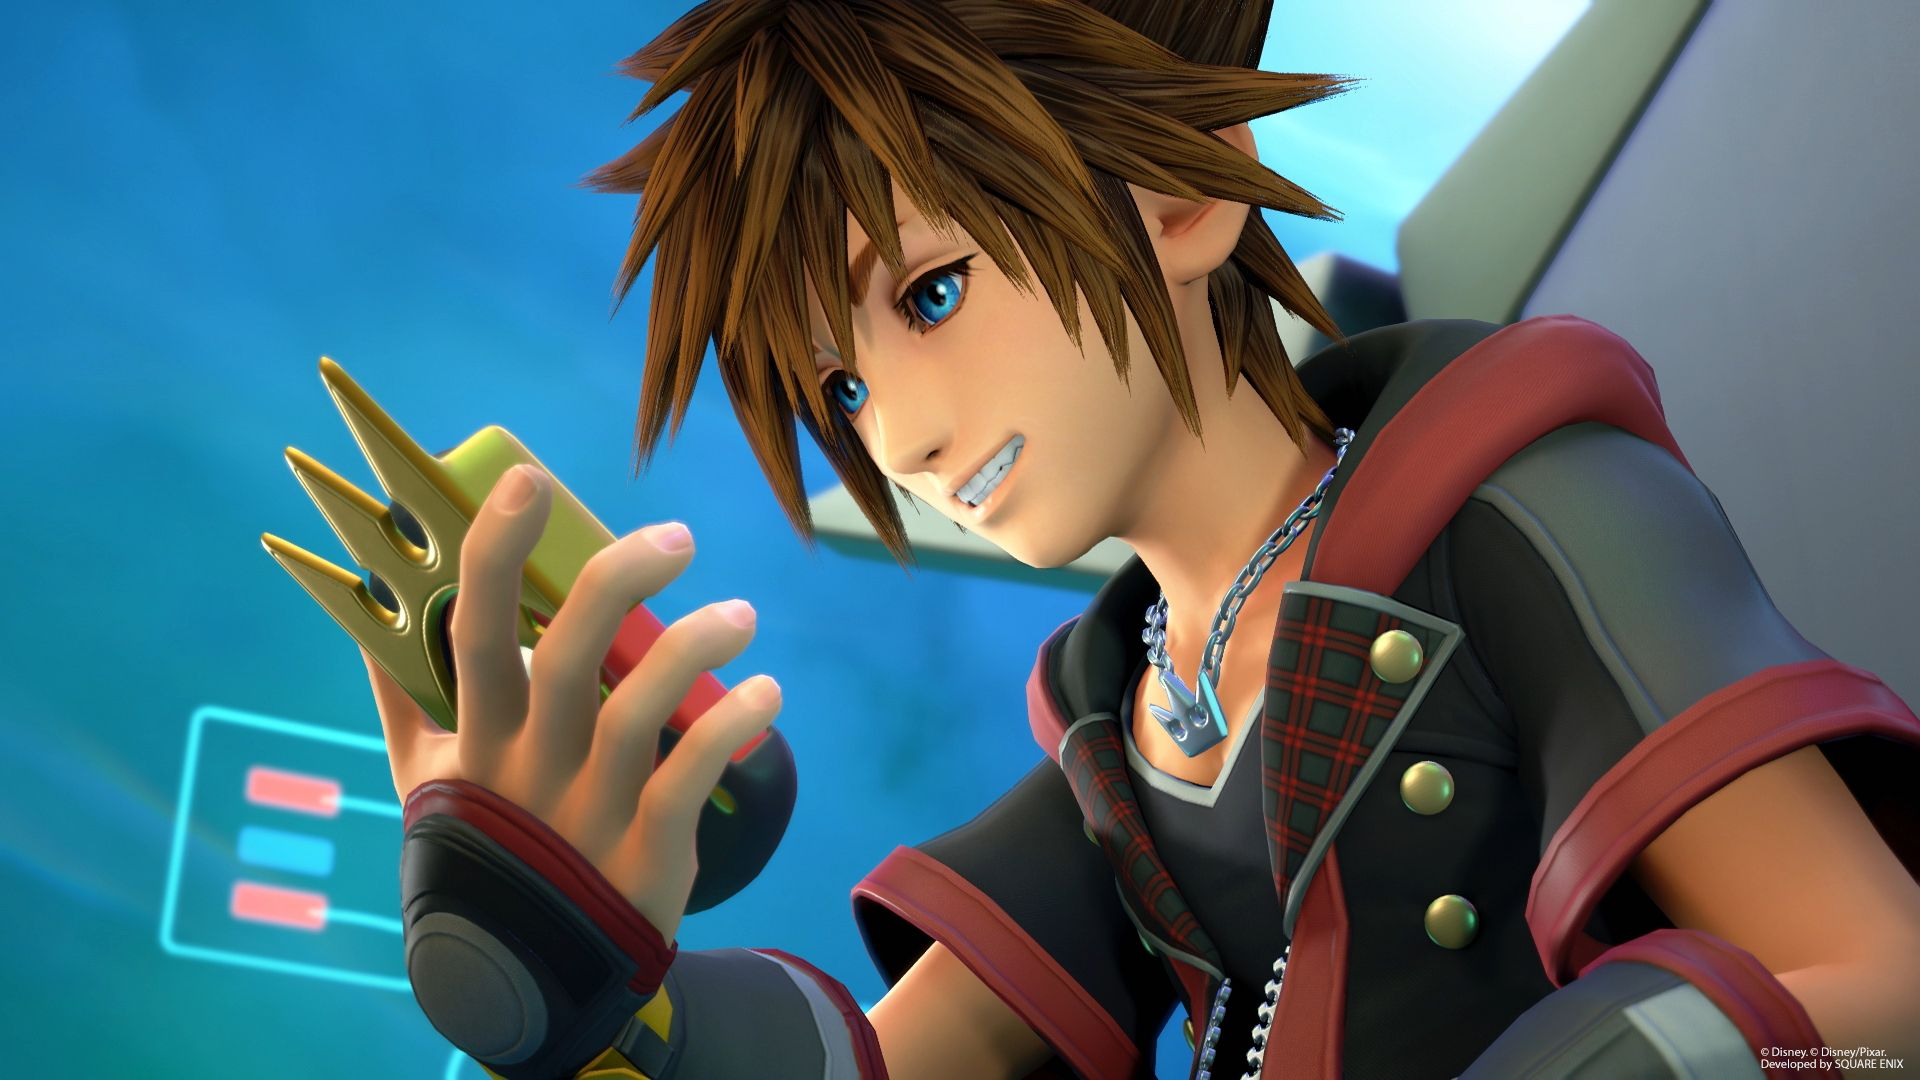 Get Your Hands On Kingdom Hearts Iii Next Month At Xo18